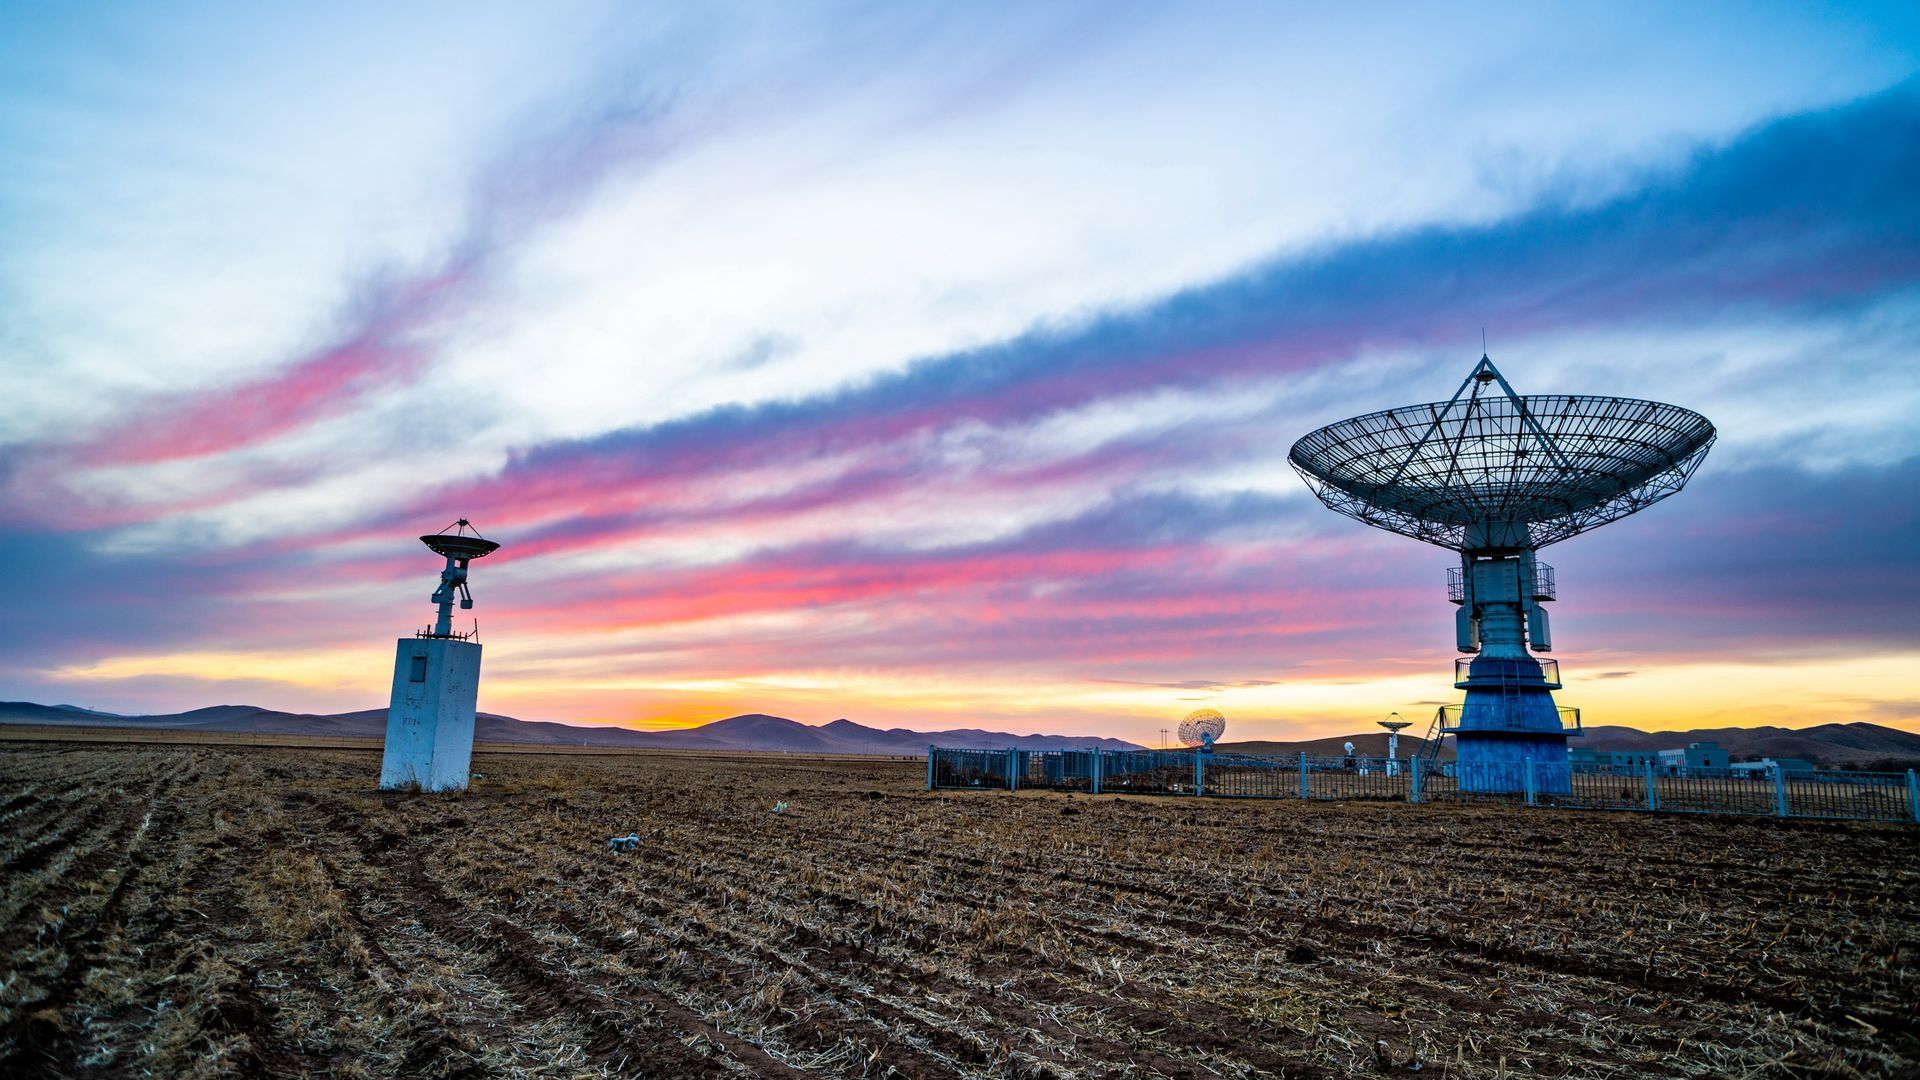 Chinese solar observatory equipment in a field in front of a beautiful sunset or sunrise.